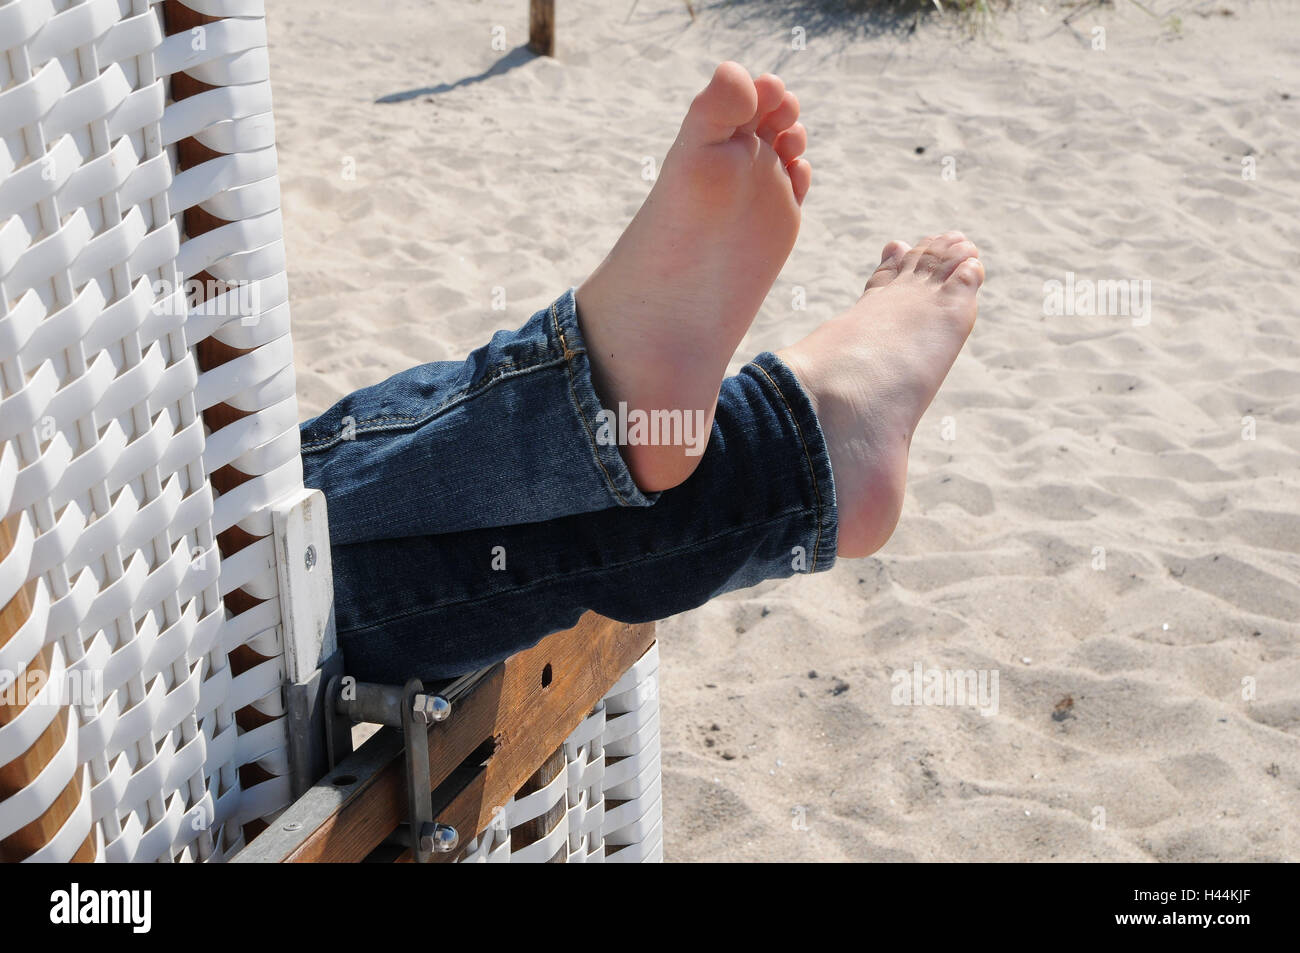 Beach Chairs, Boy, Feet, High Level Laying, Detail, Person, Child, Feet,  Summers, Vacation, Relaxing, Take It Easy, Consumption, Leisure Time,